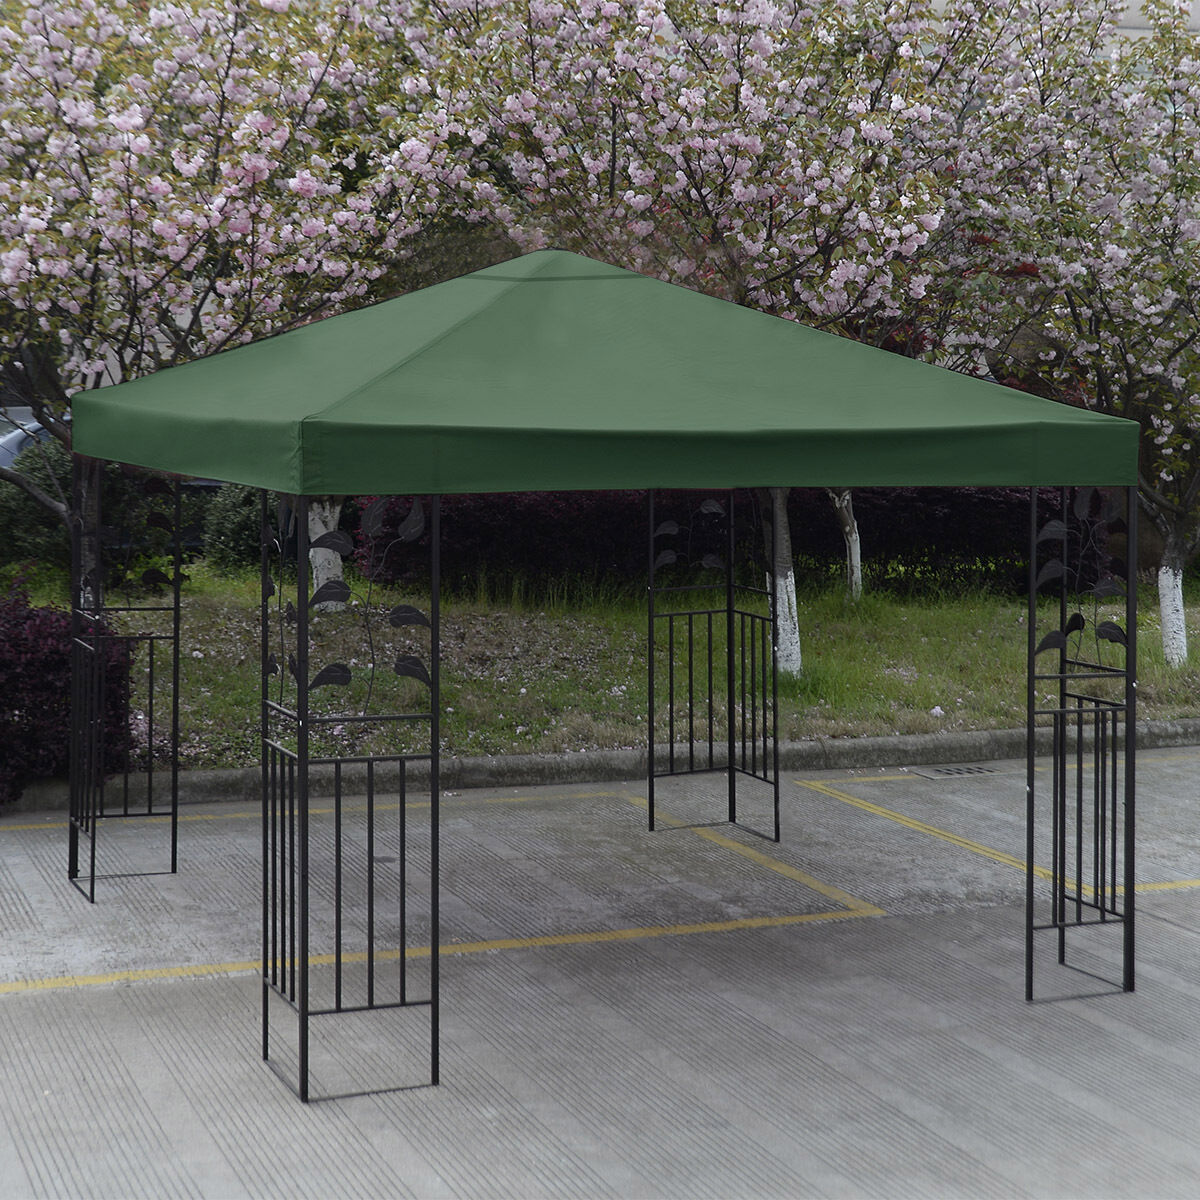 10-039-X-10-039-Gazebo-Top-Cover-Patio-Canopy-Replacement-1-Tier-or-2-Tier-3-Color-New thumbnail 9